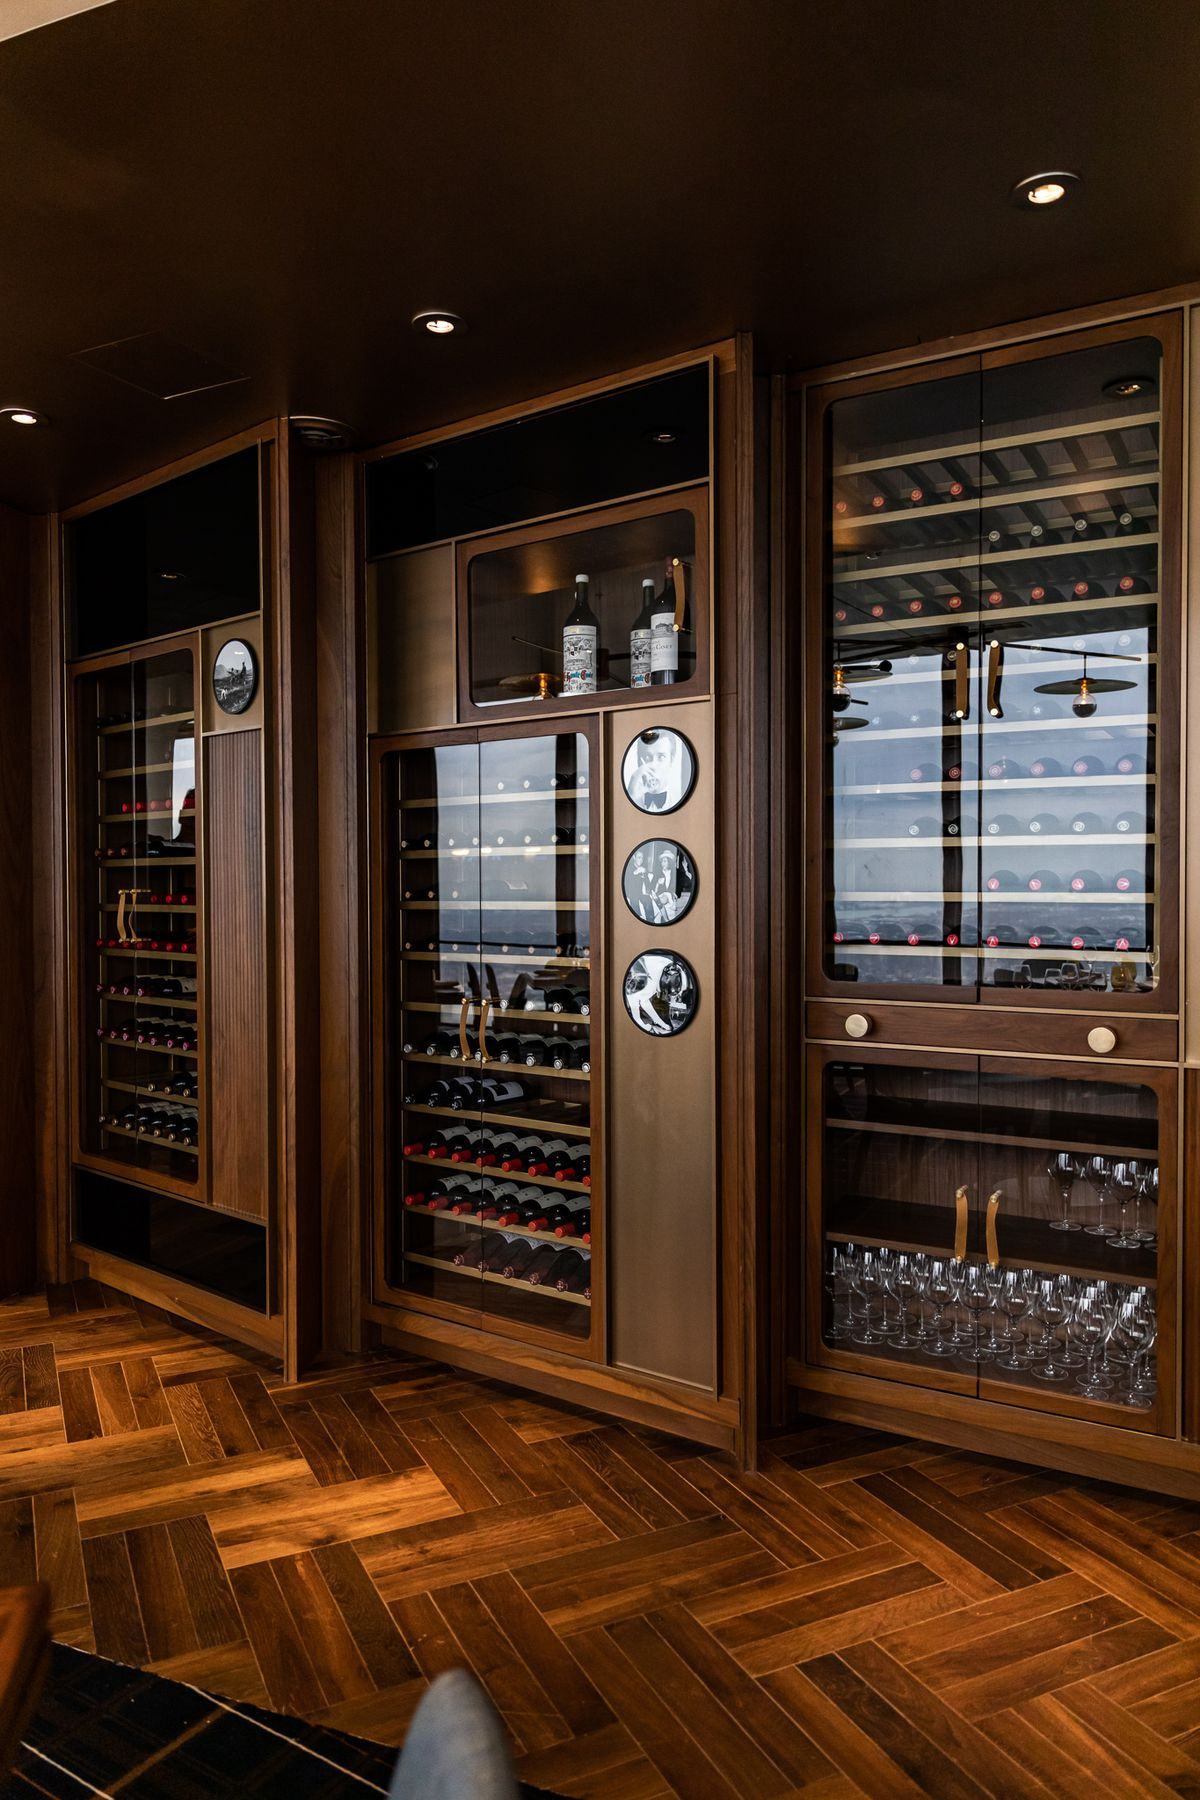 The wood and glass wine case has a mid-century look with circular, vintage black and white photos displayed throughout.